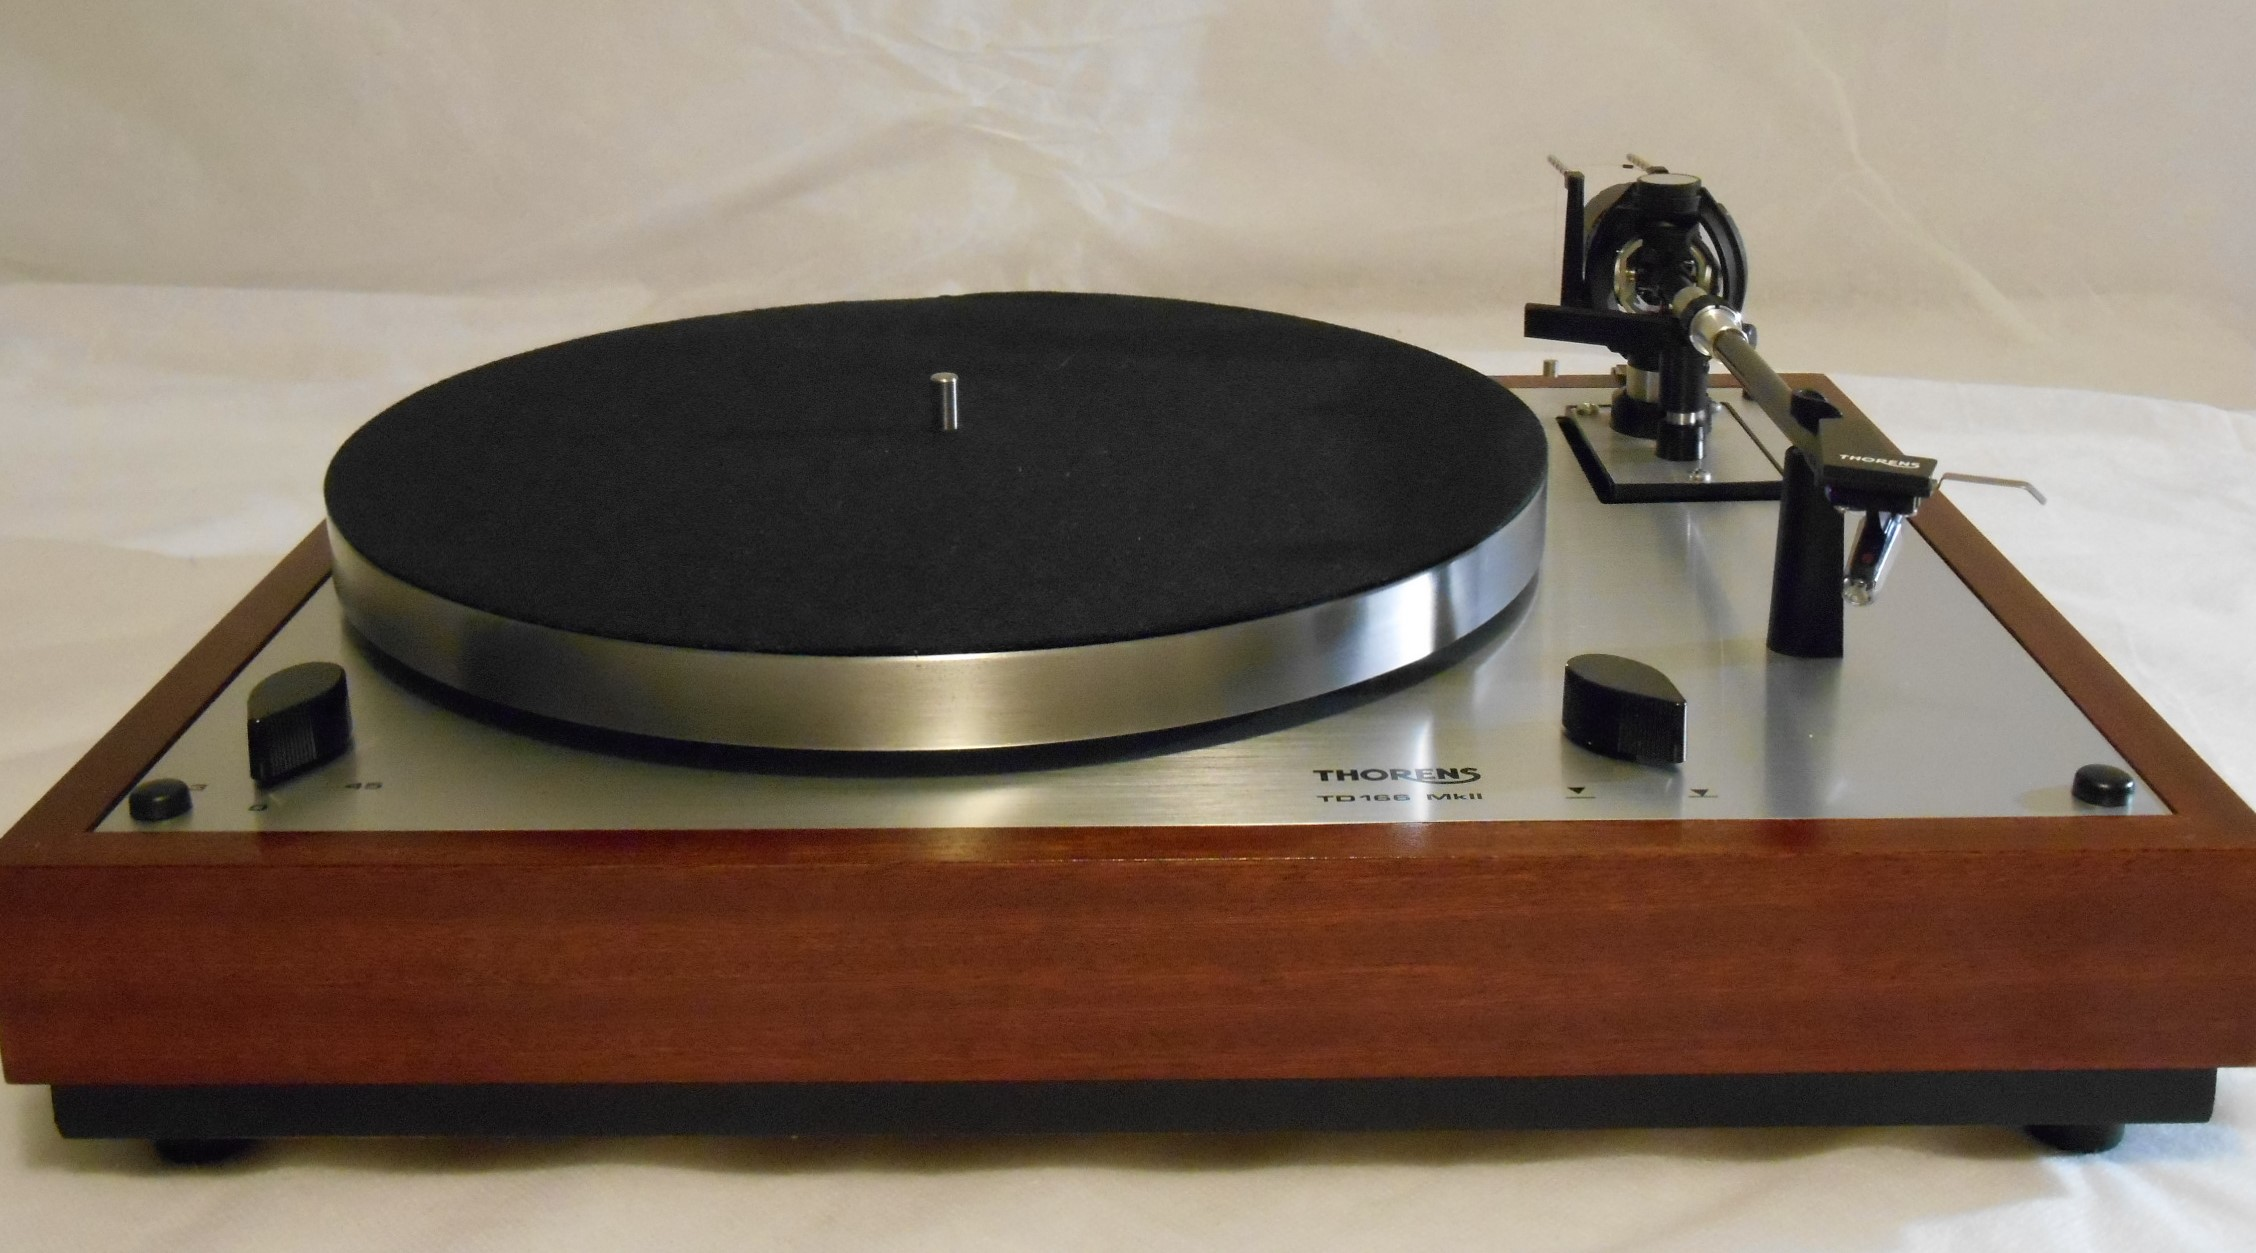 Thorens Turntable Thorens Td-166 Mkii Turntable